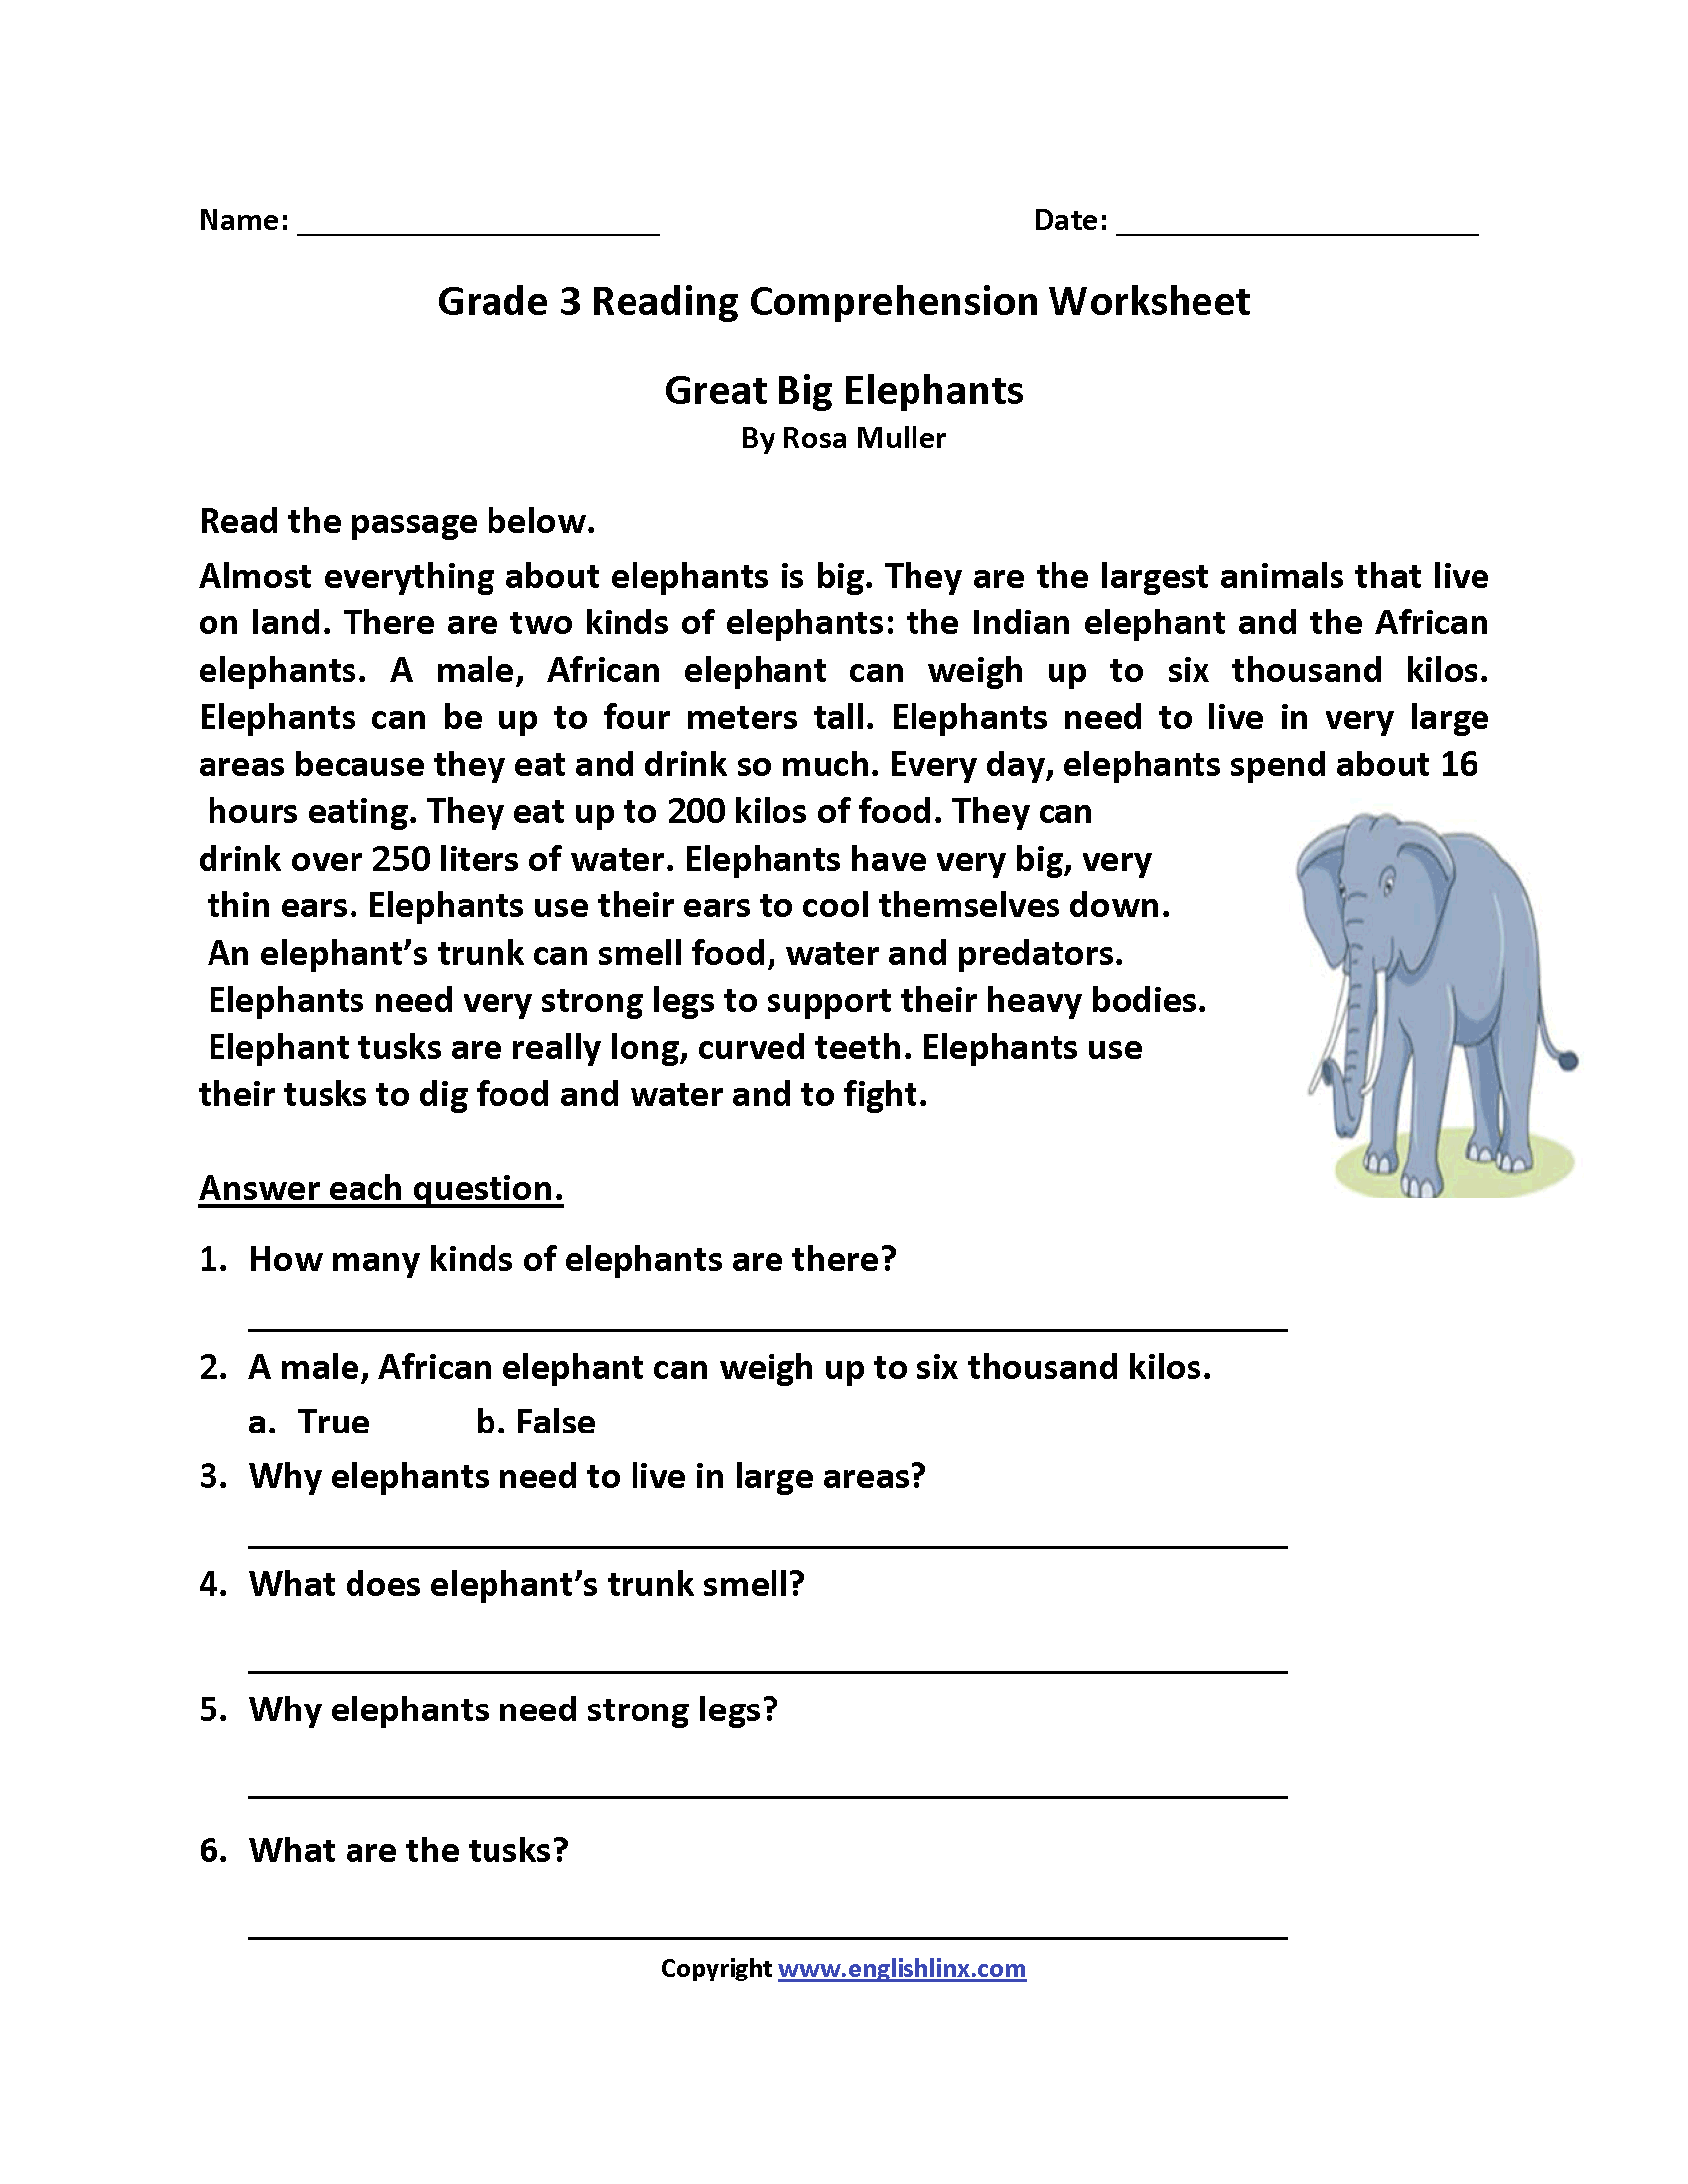 Great Big Elephants Third Grade Reading Worksheets Reading